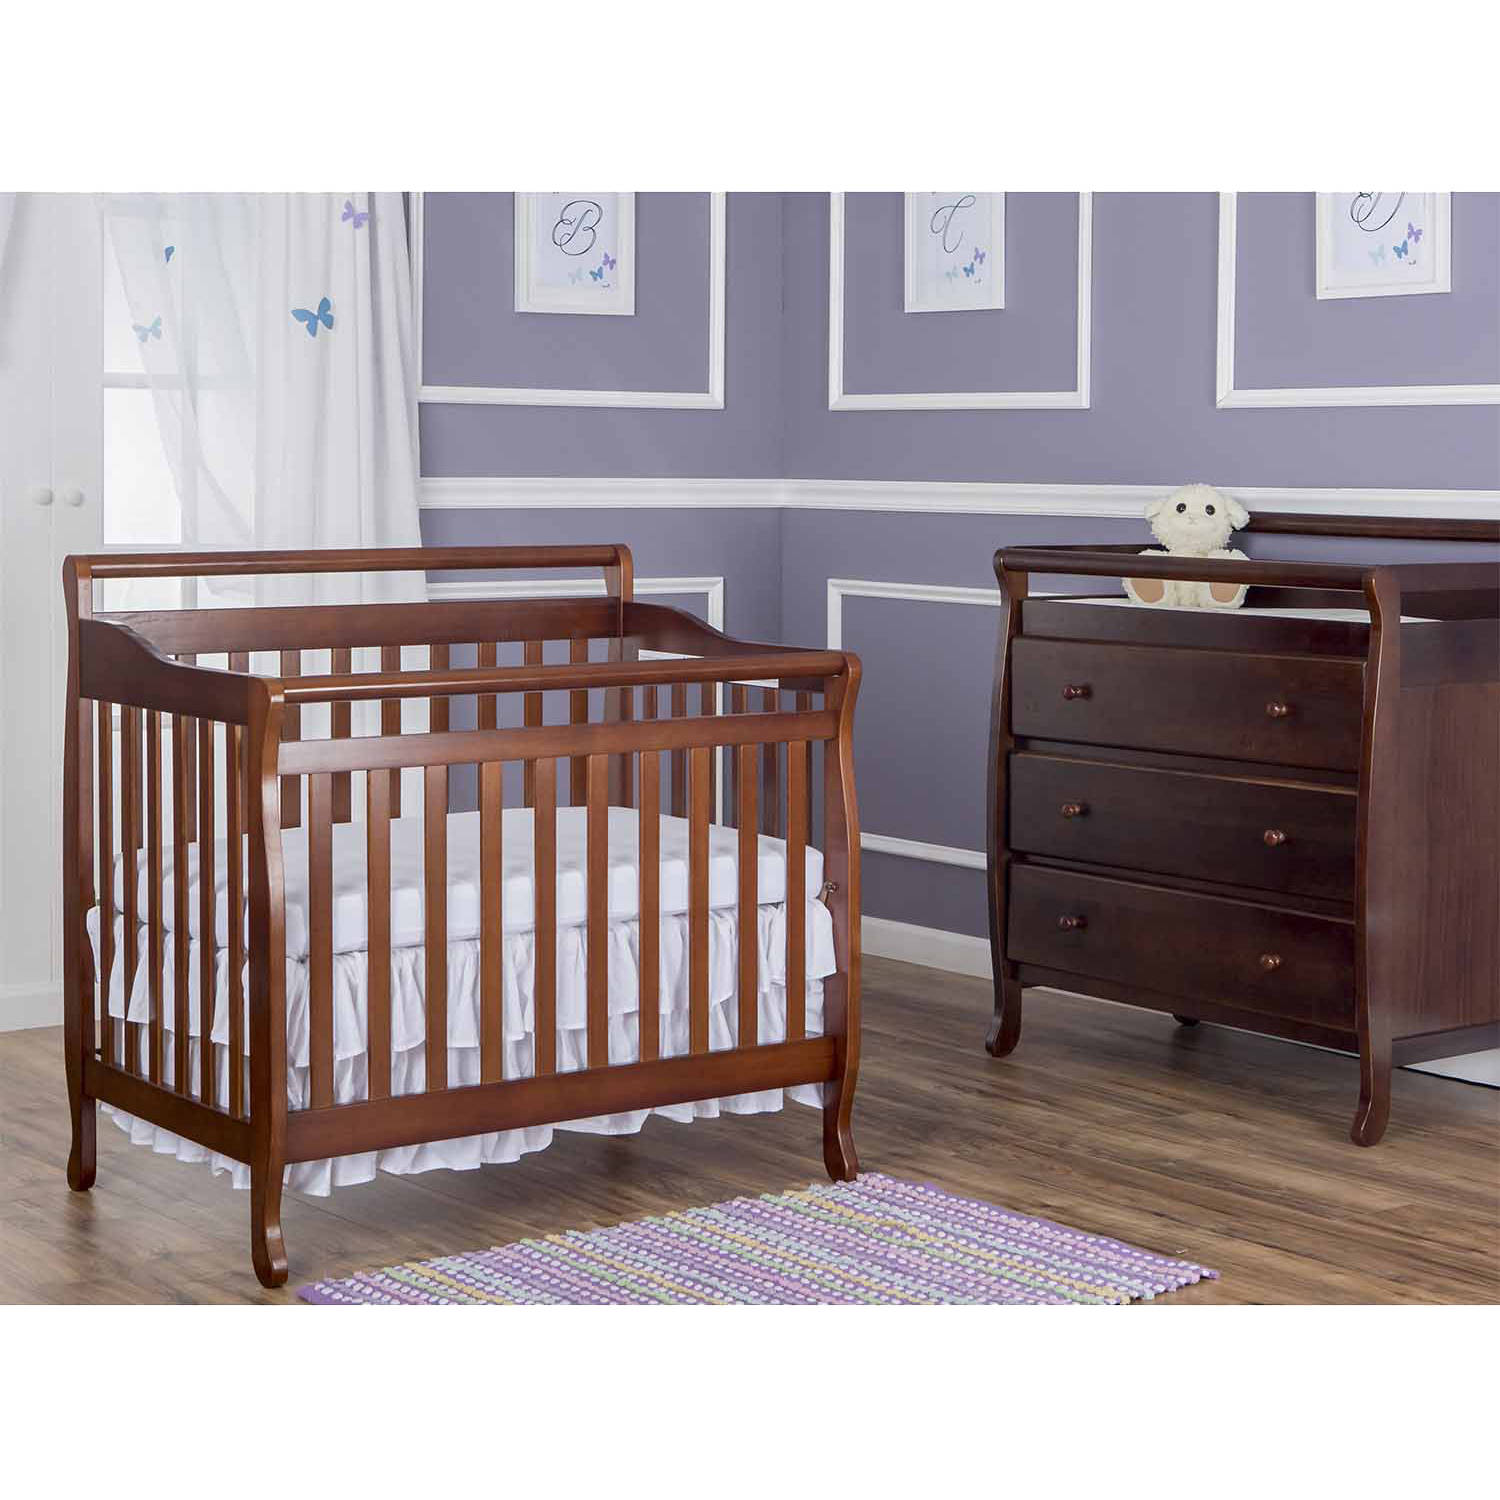 Dream On Me Niko 5 in 1 Convertible Crib with Changer Cherry